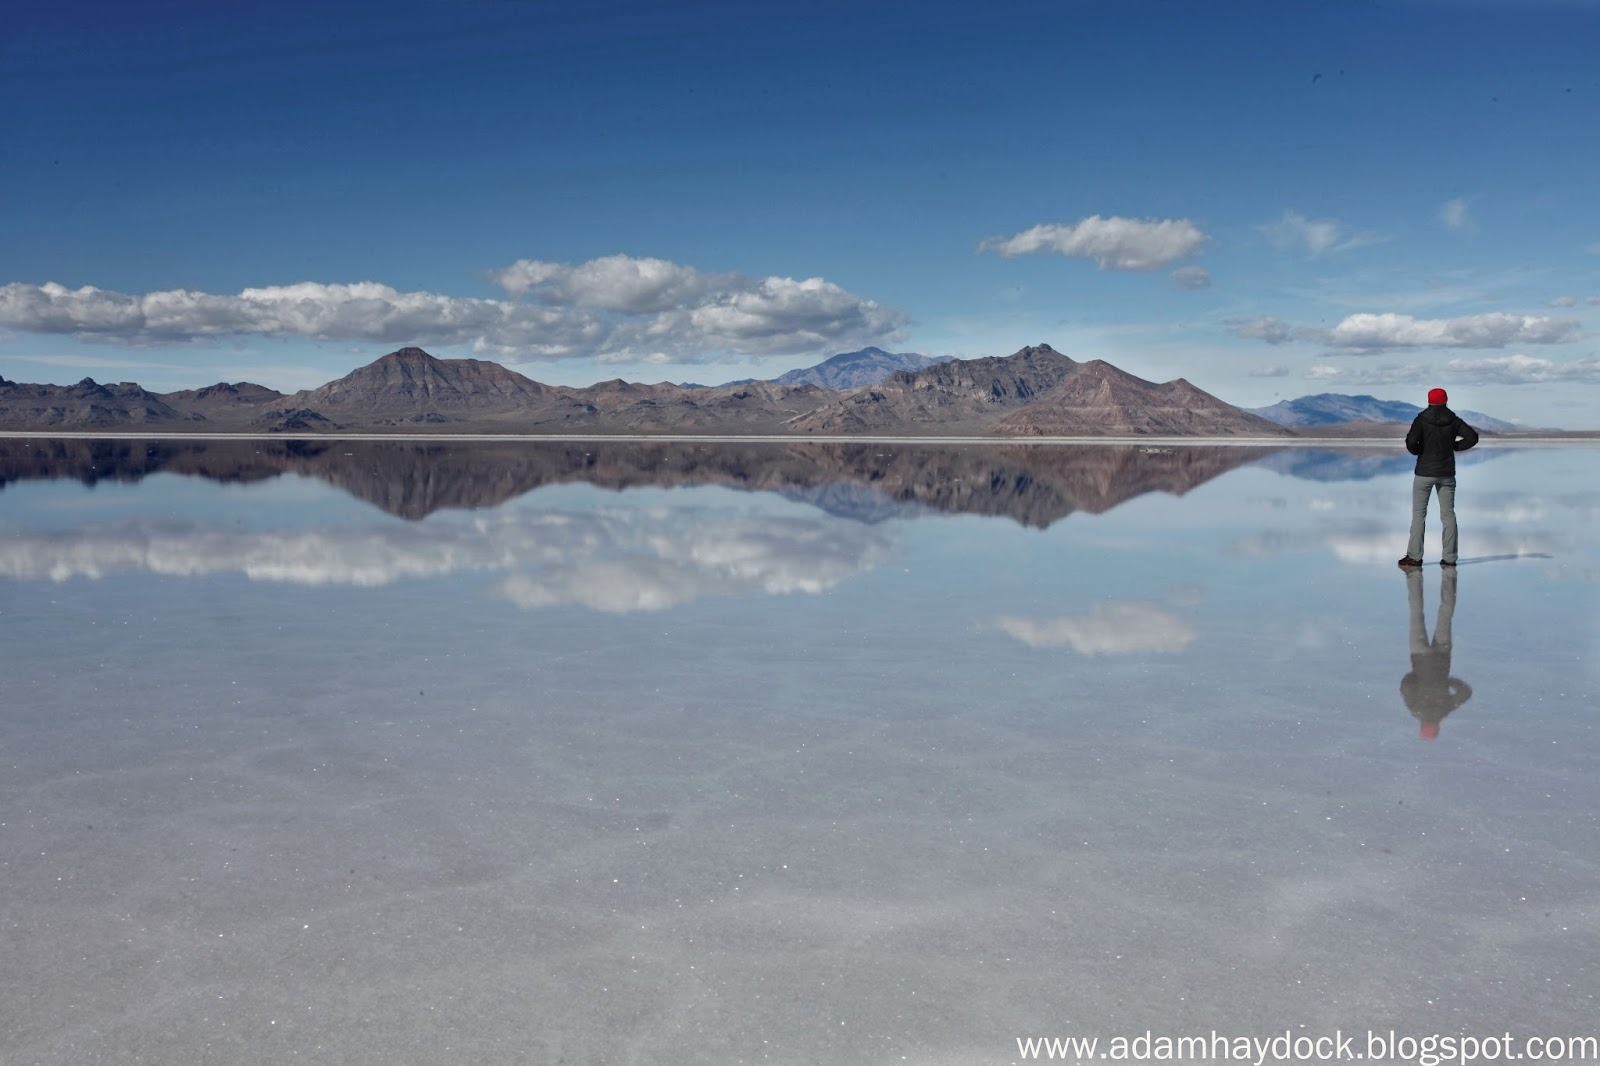 center>BONNEVILLE SALT FLATS</center> - ADAM HAYDOCK